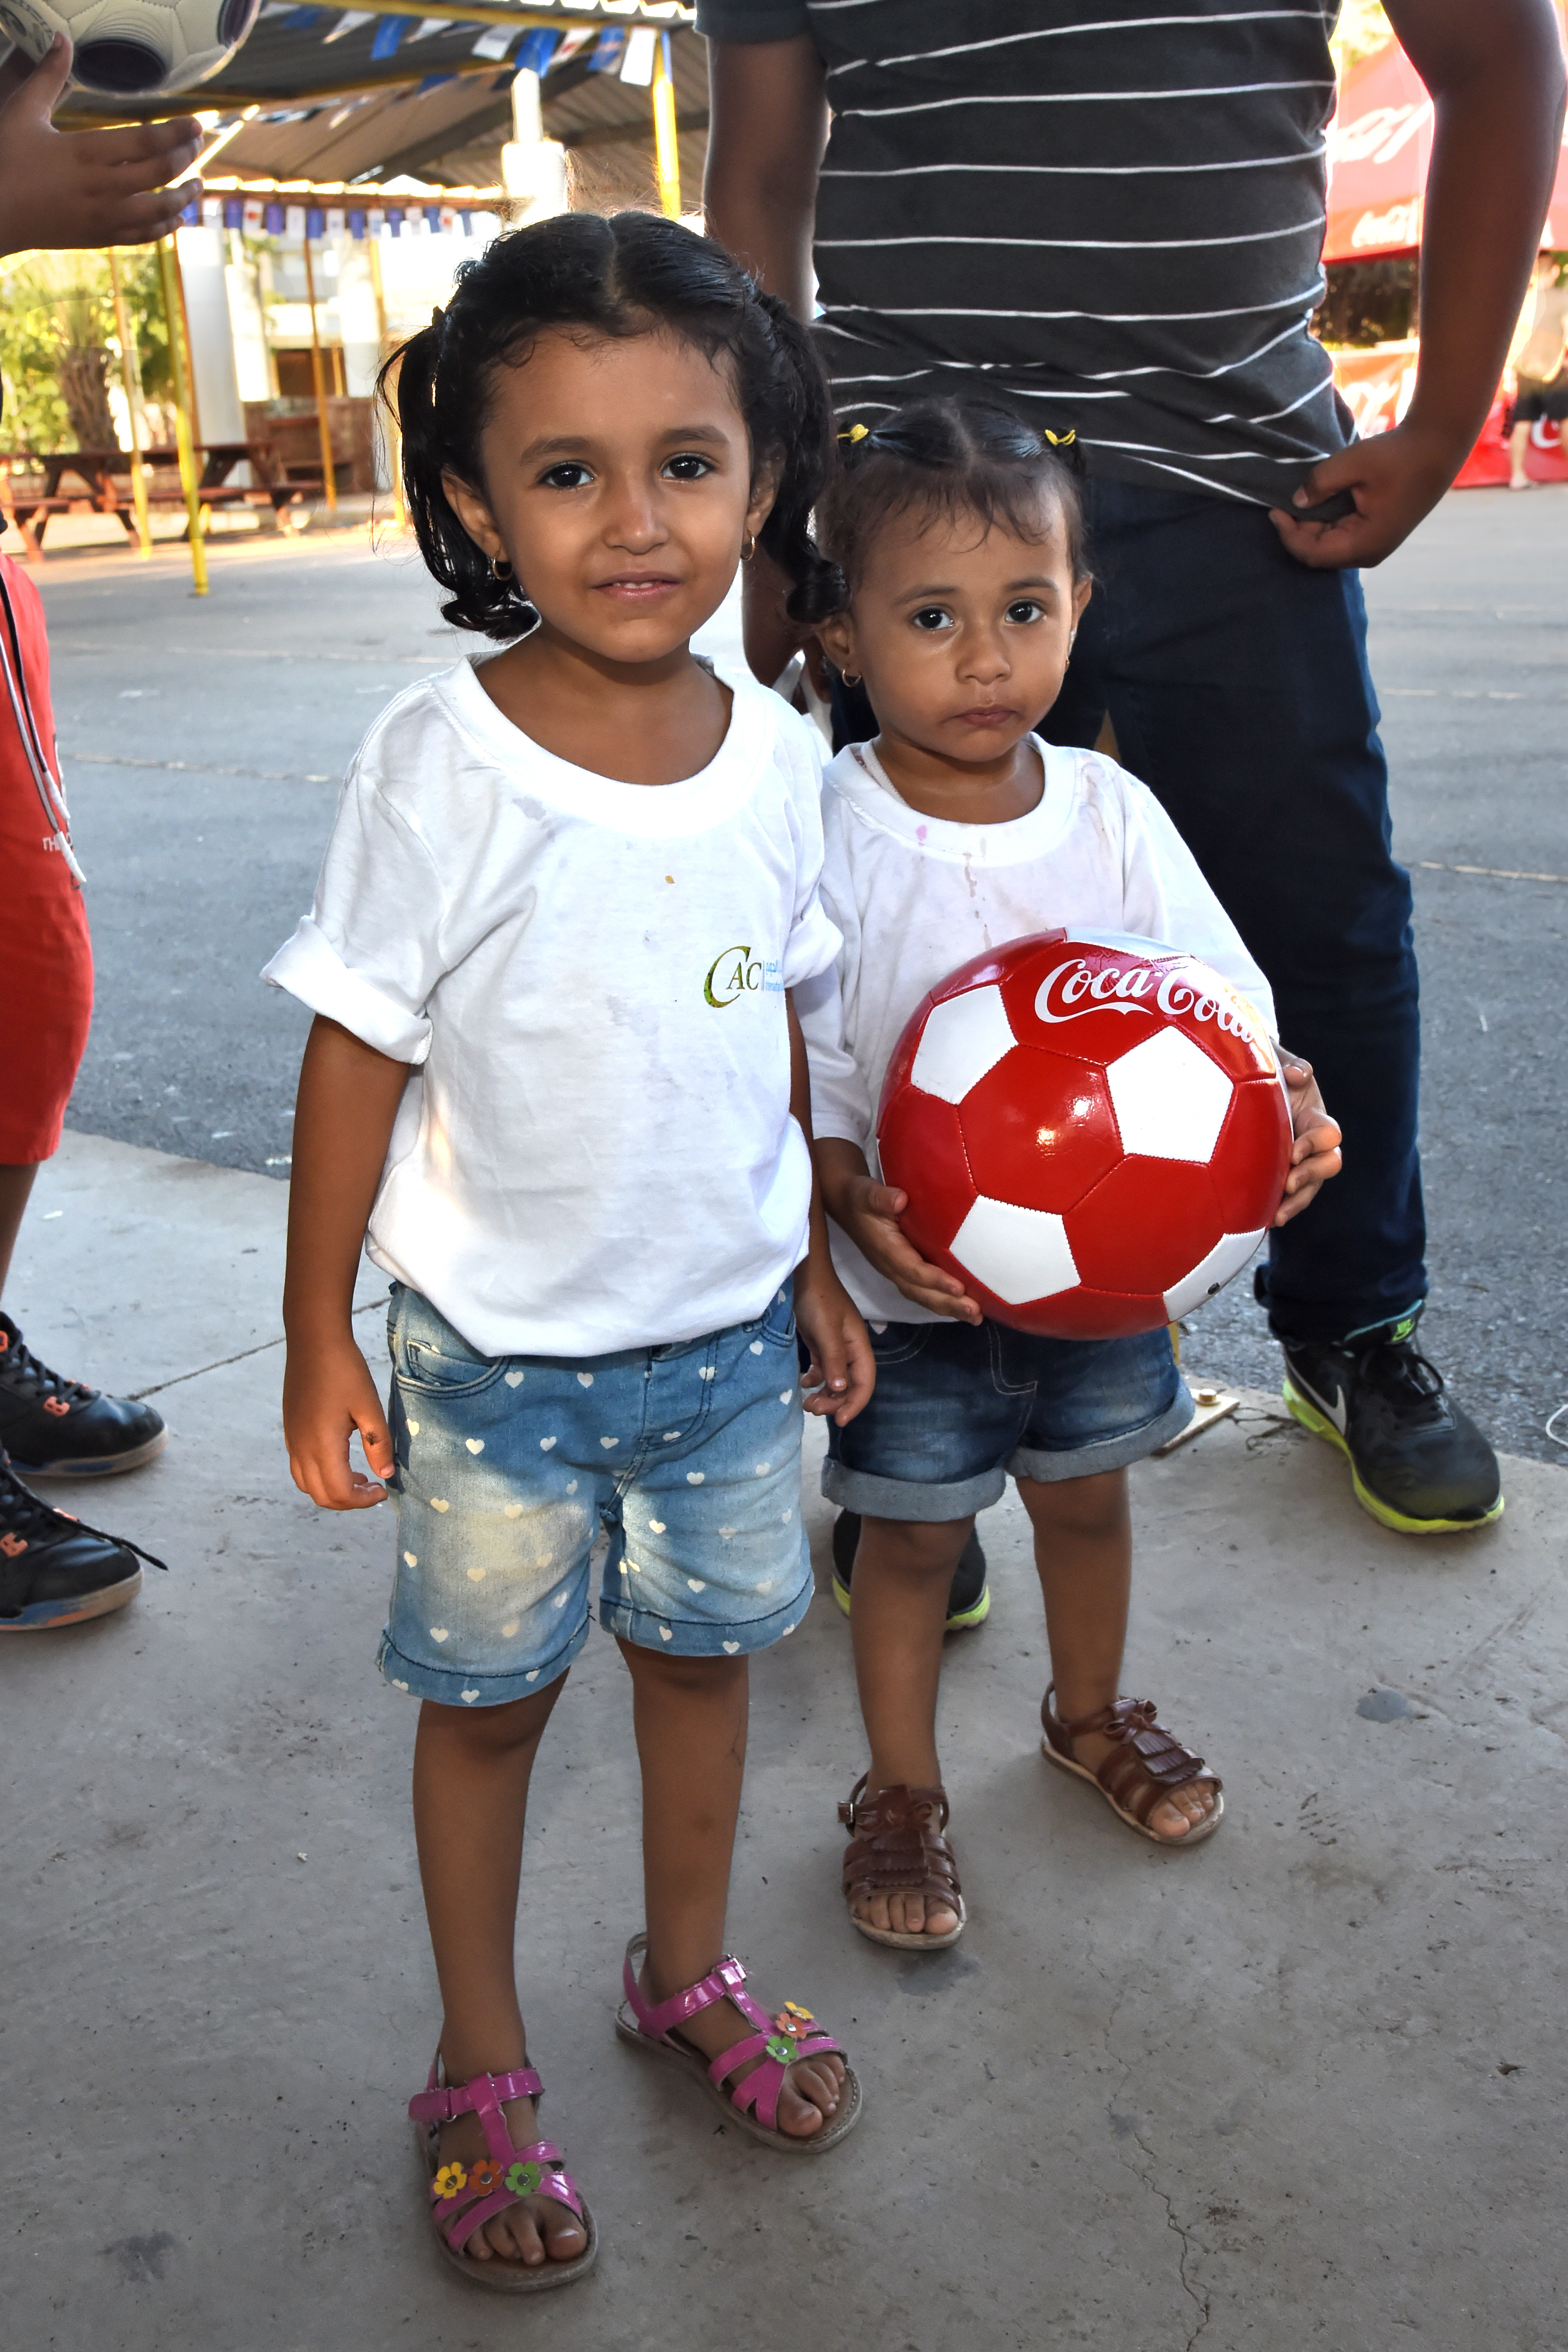 Children attending a soccer tournament at the French school Kessel in downtown Djibouti Dec. 9, 2016 are presented soccer balls on behalf of the Kick for Nick Foundation. The non-profit foundation was established in 2006 by the family of Pfc. Nicholas Madaras, an avid soccer player and youth coach who was killed while serving in Iraq. (U.S. Air National Guard photo by Master Sgt. Paul Gorman)